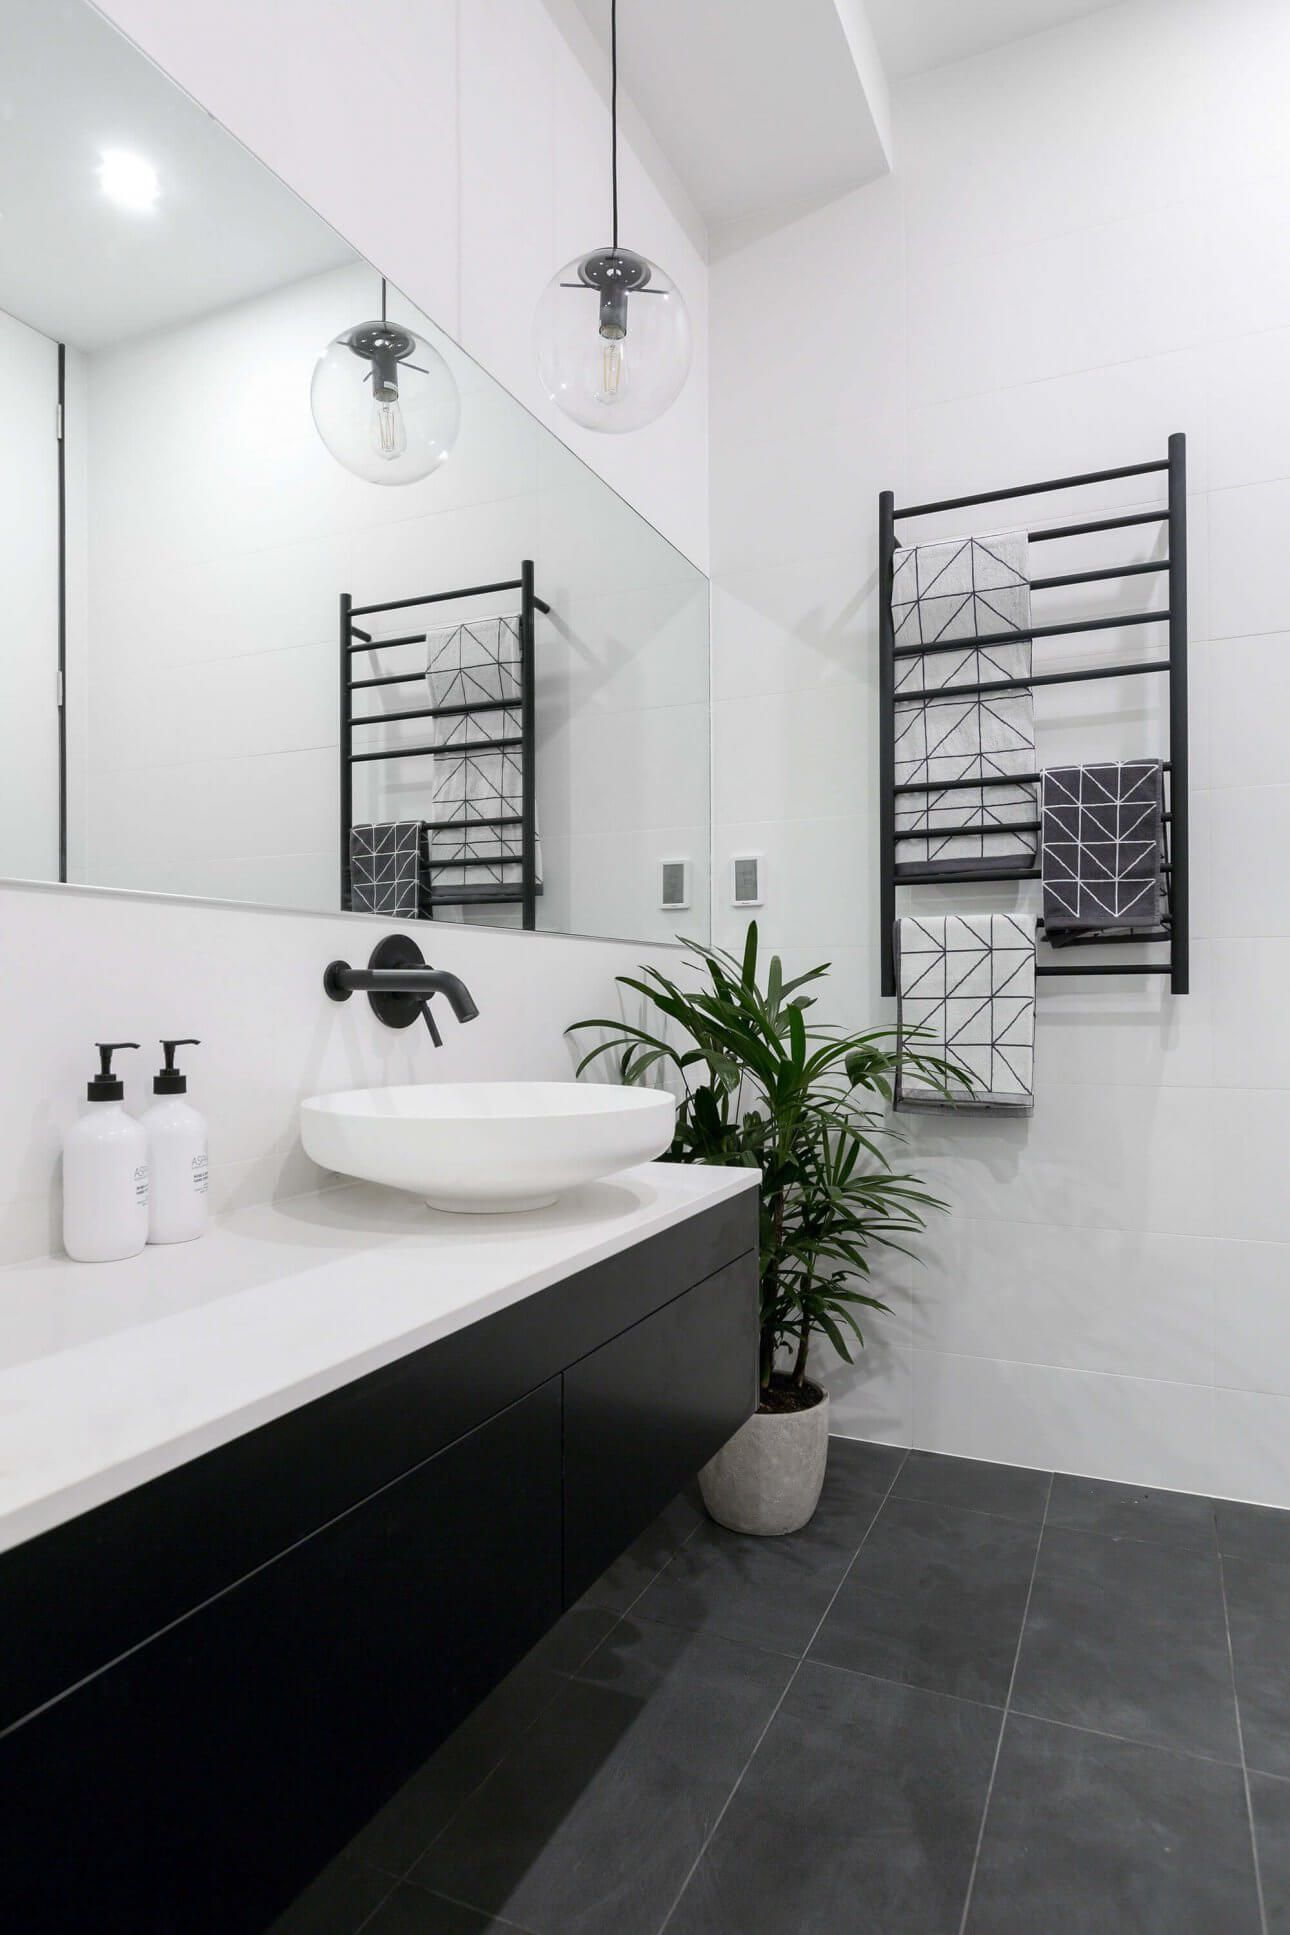 andy-ben-week-3-bathroom-2000x1333-15 | Bathroom Toilets | Pinterest ...